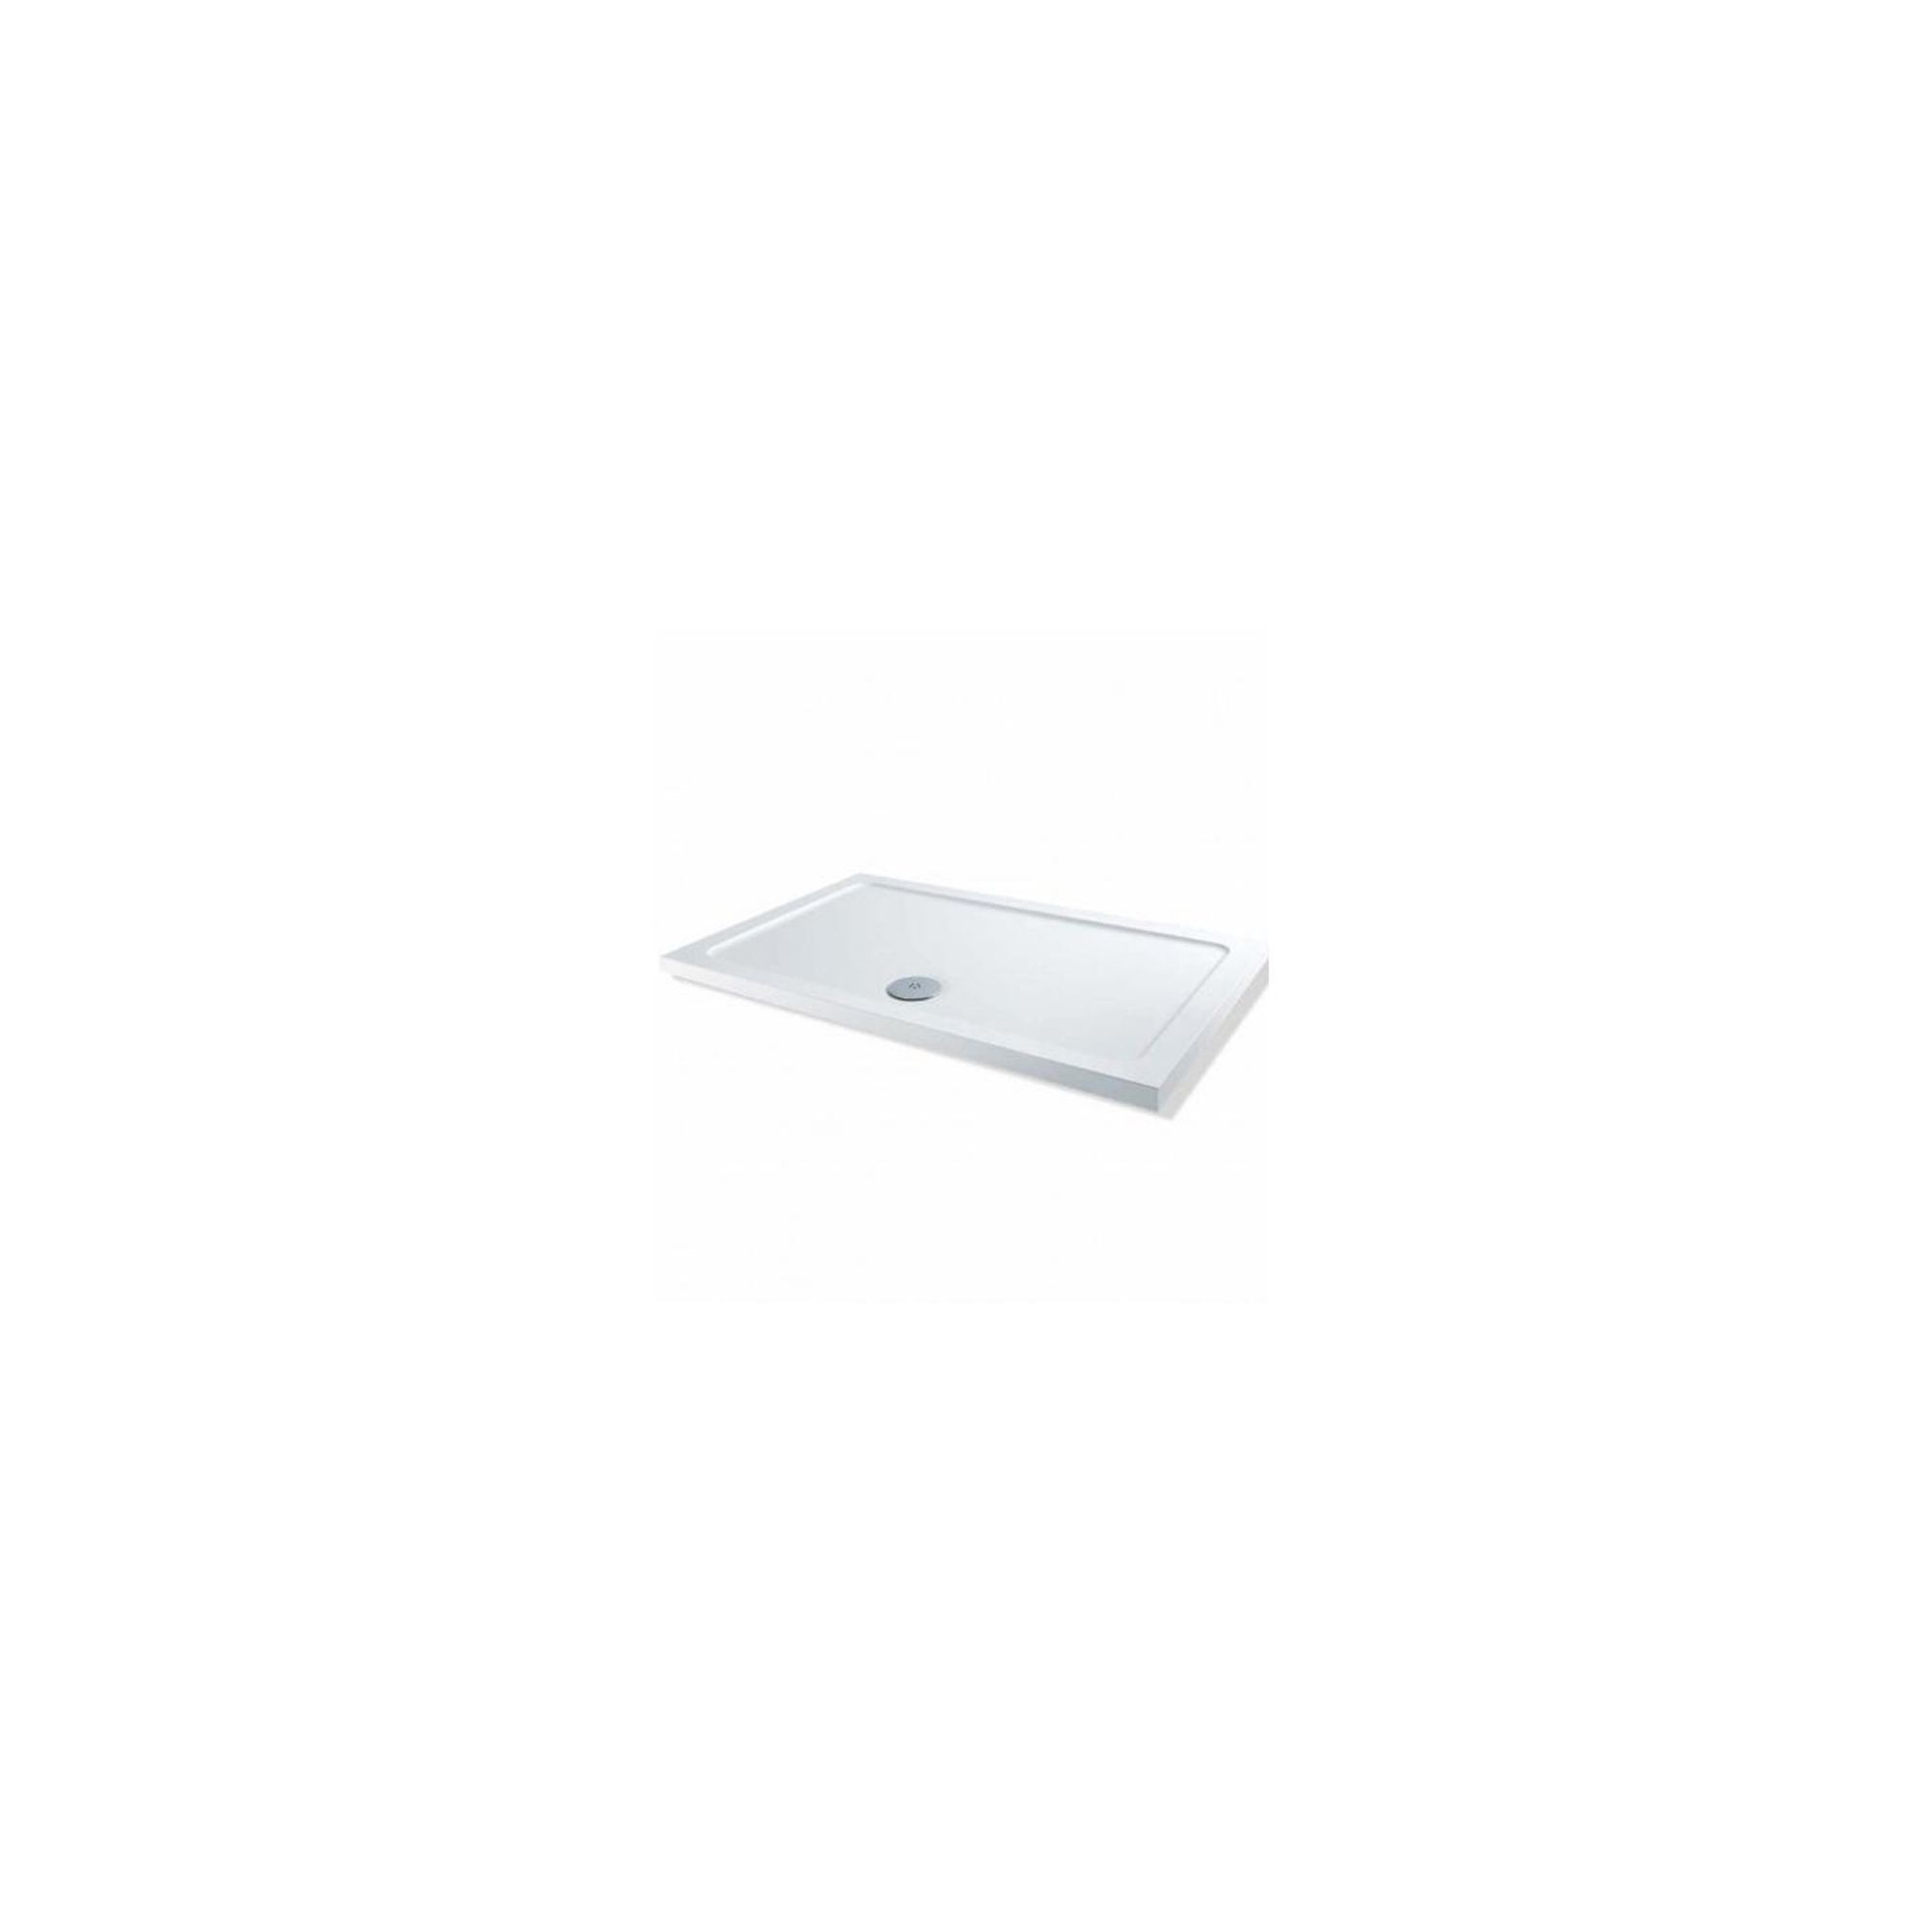 Elemis Low Profile Rectangular Stone Resin Shower Tray, 1400mm x 900mm at Tesco Direct